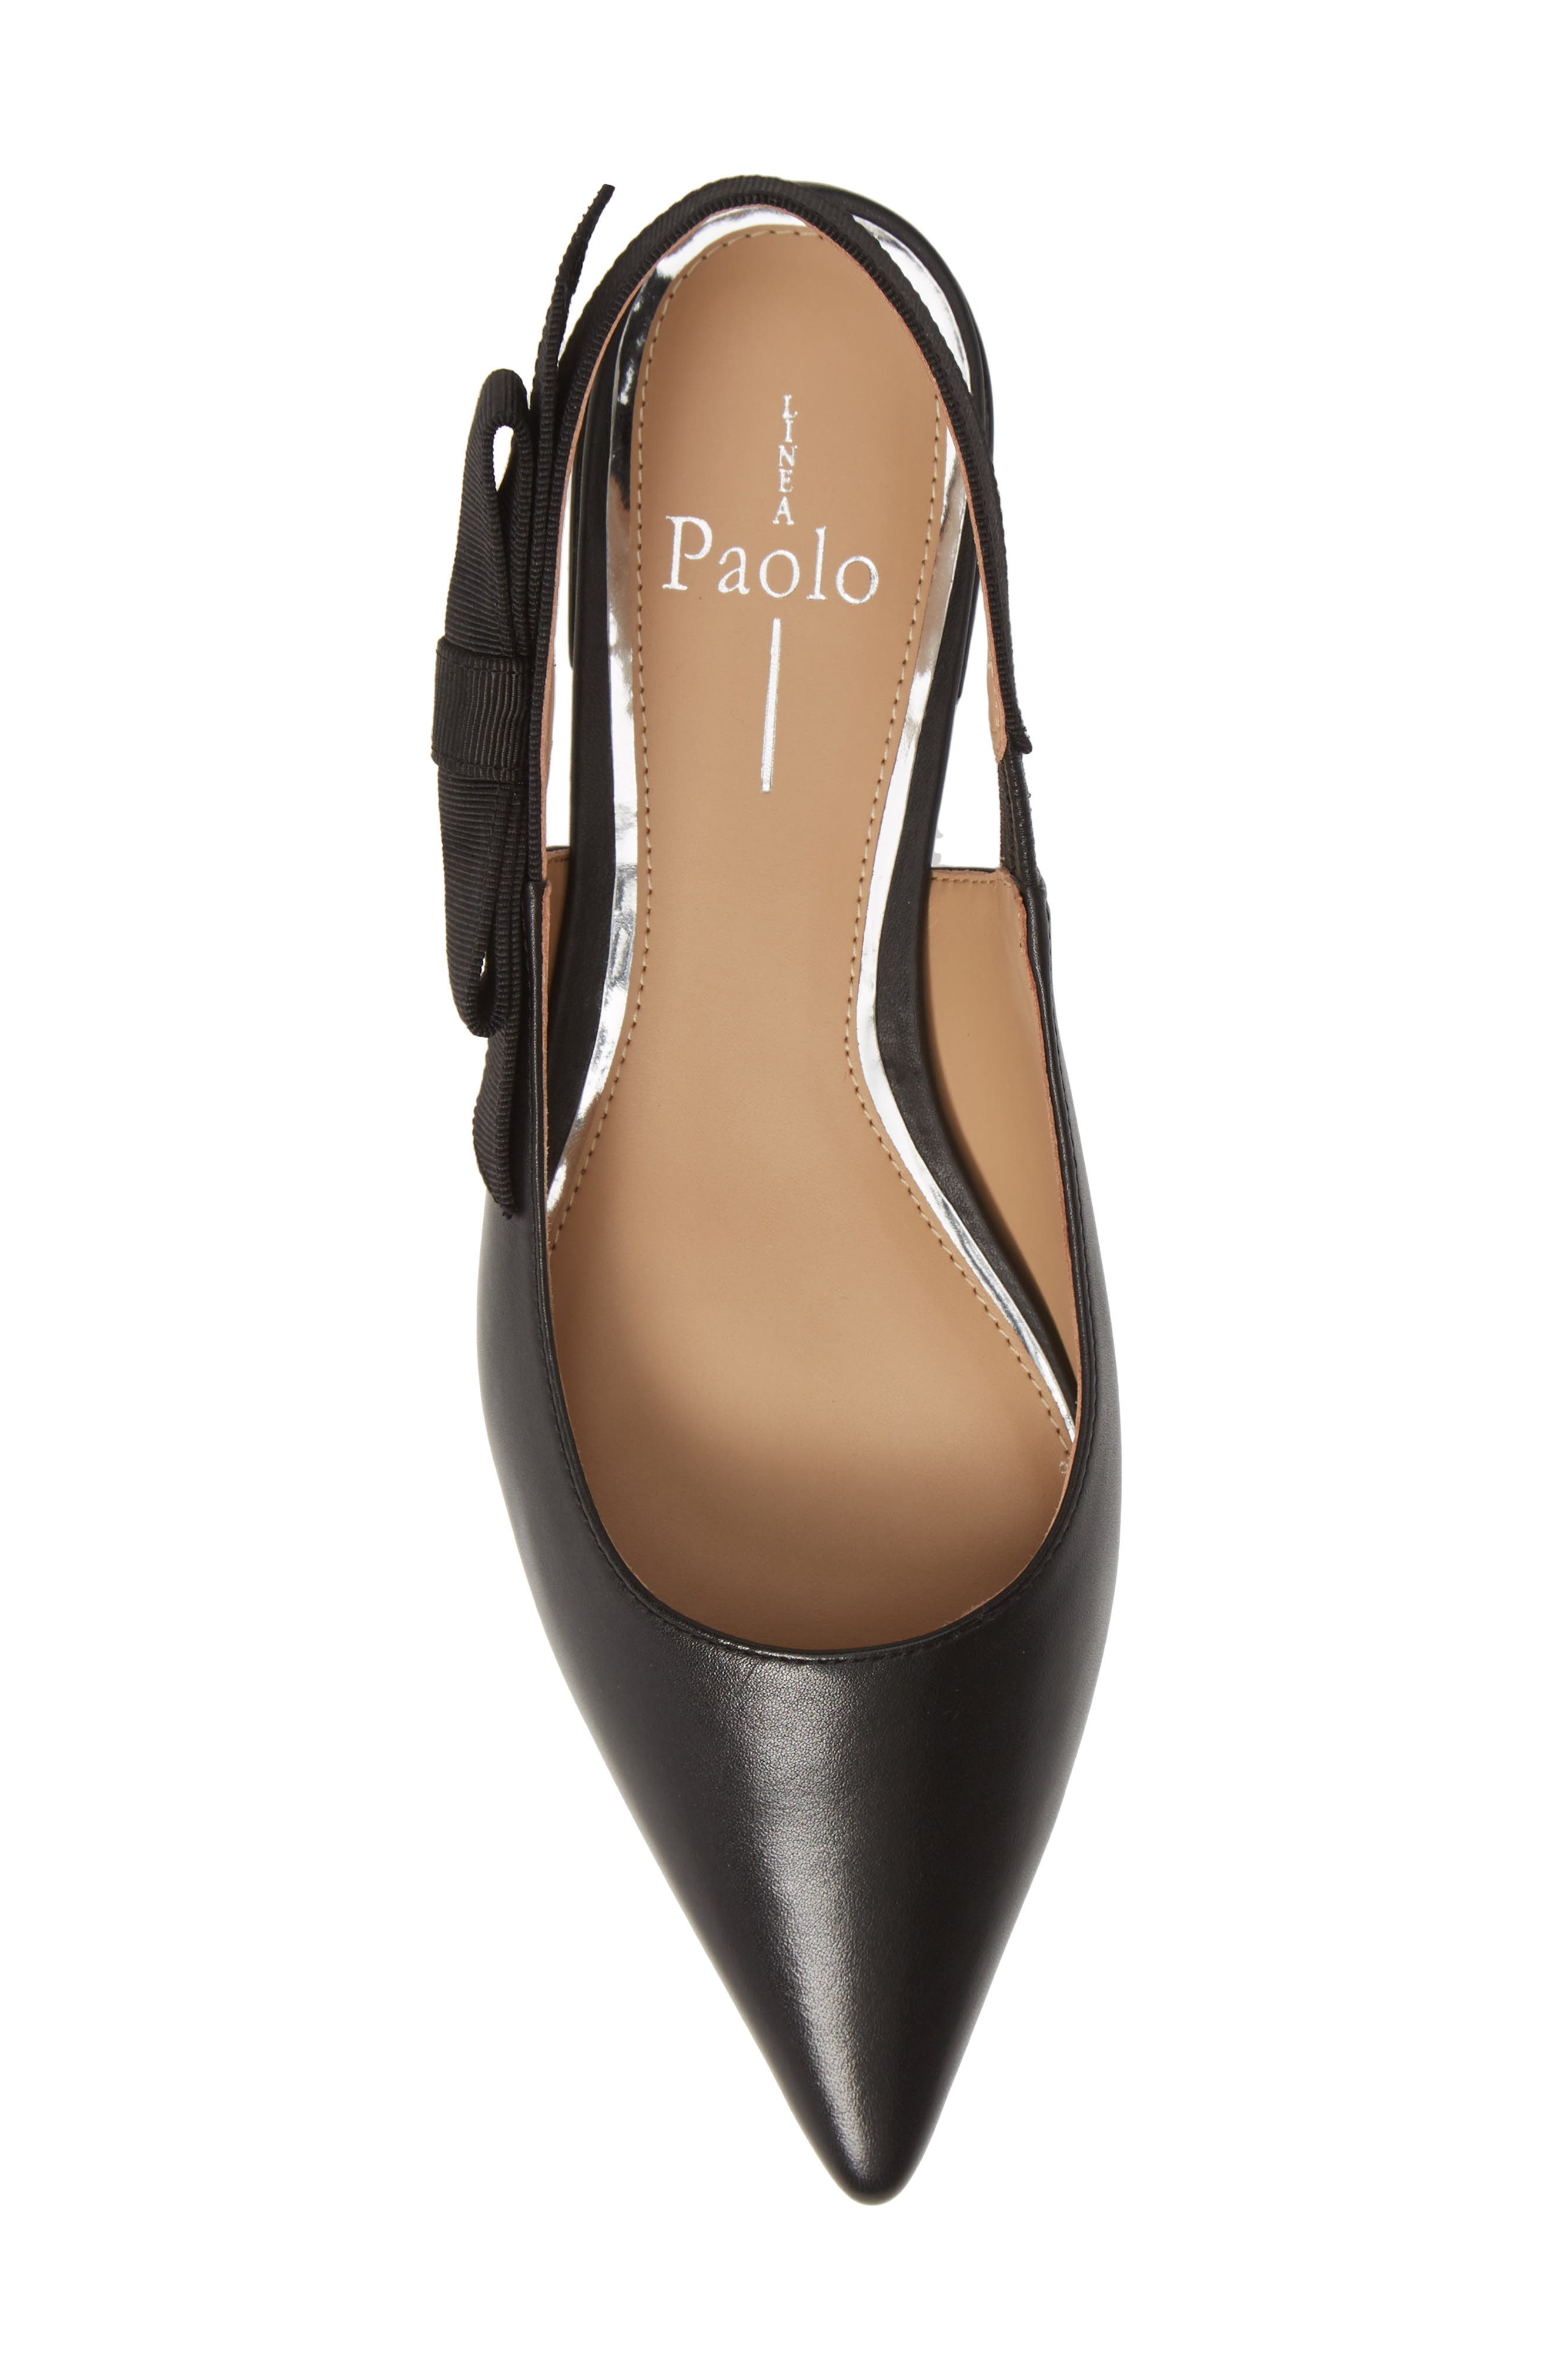 LINEA PAOLO, Darcy Bow Slingback Flat, Alternate thumbnail 5, color, BLACK LEATHER